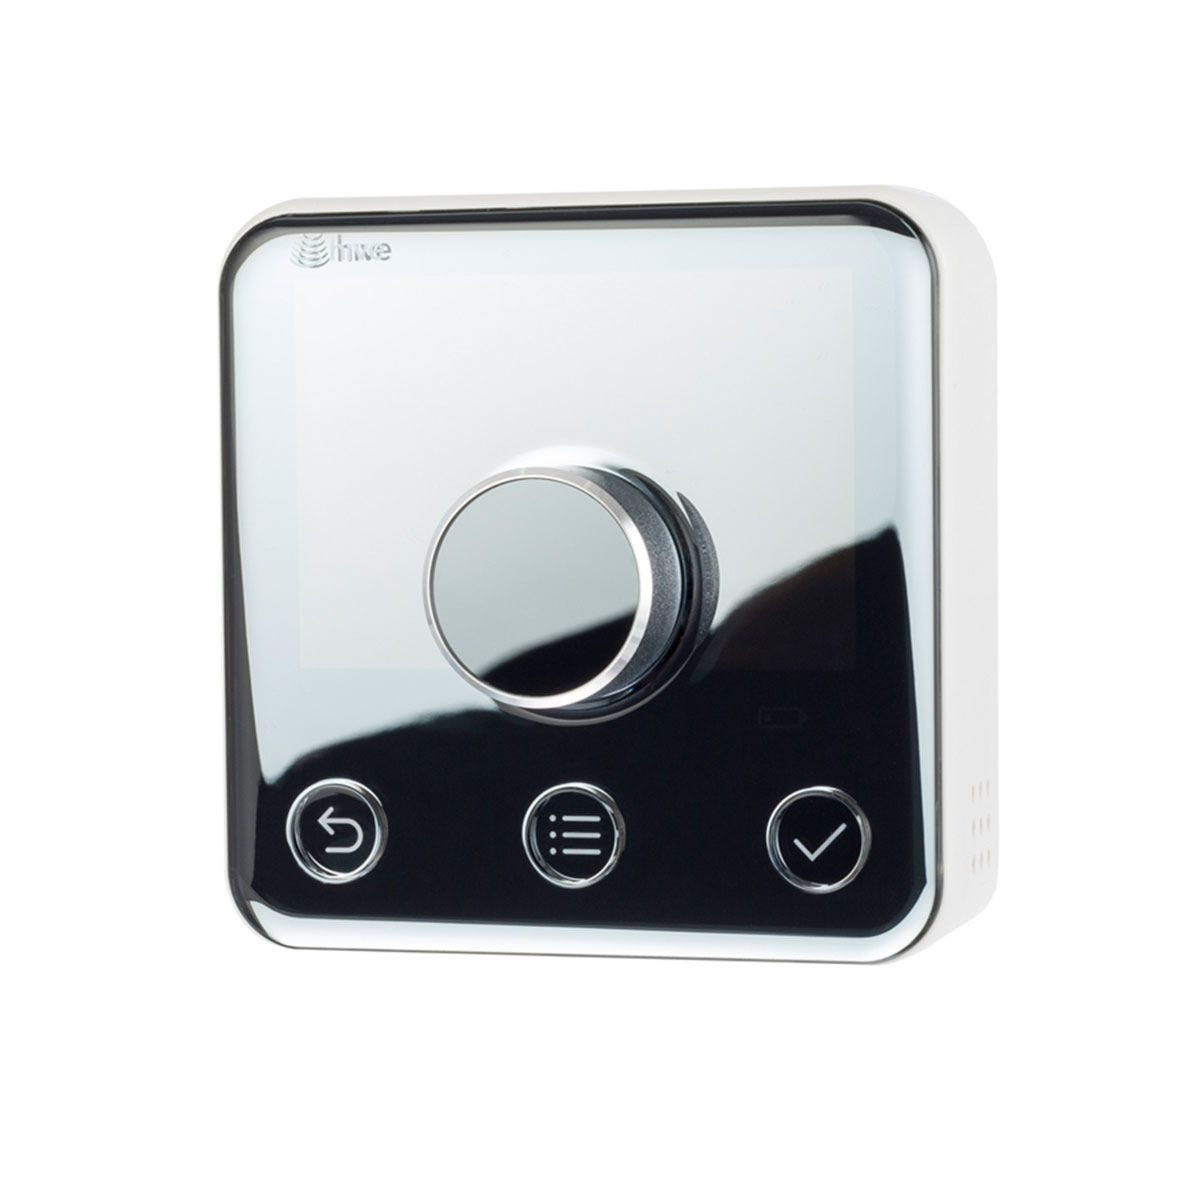 Hive Active Heating Thermostat without Professional Installation - Black